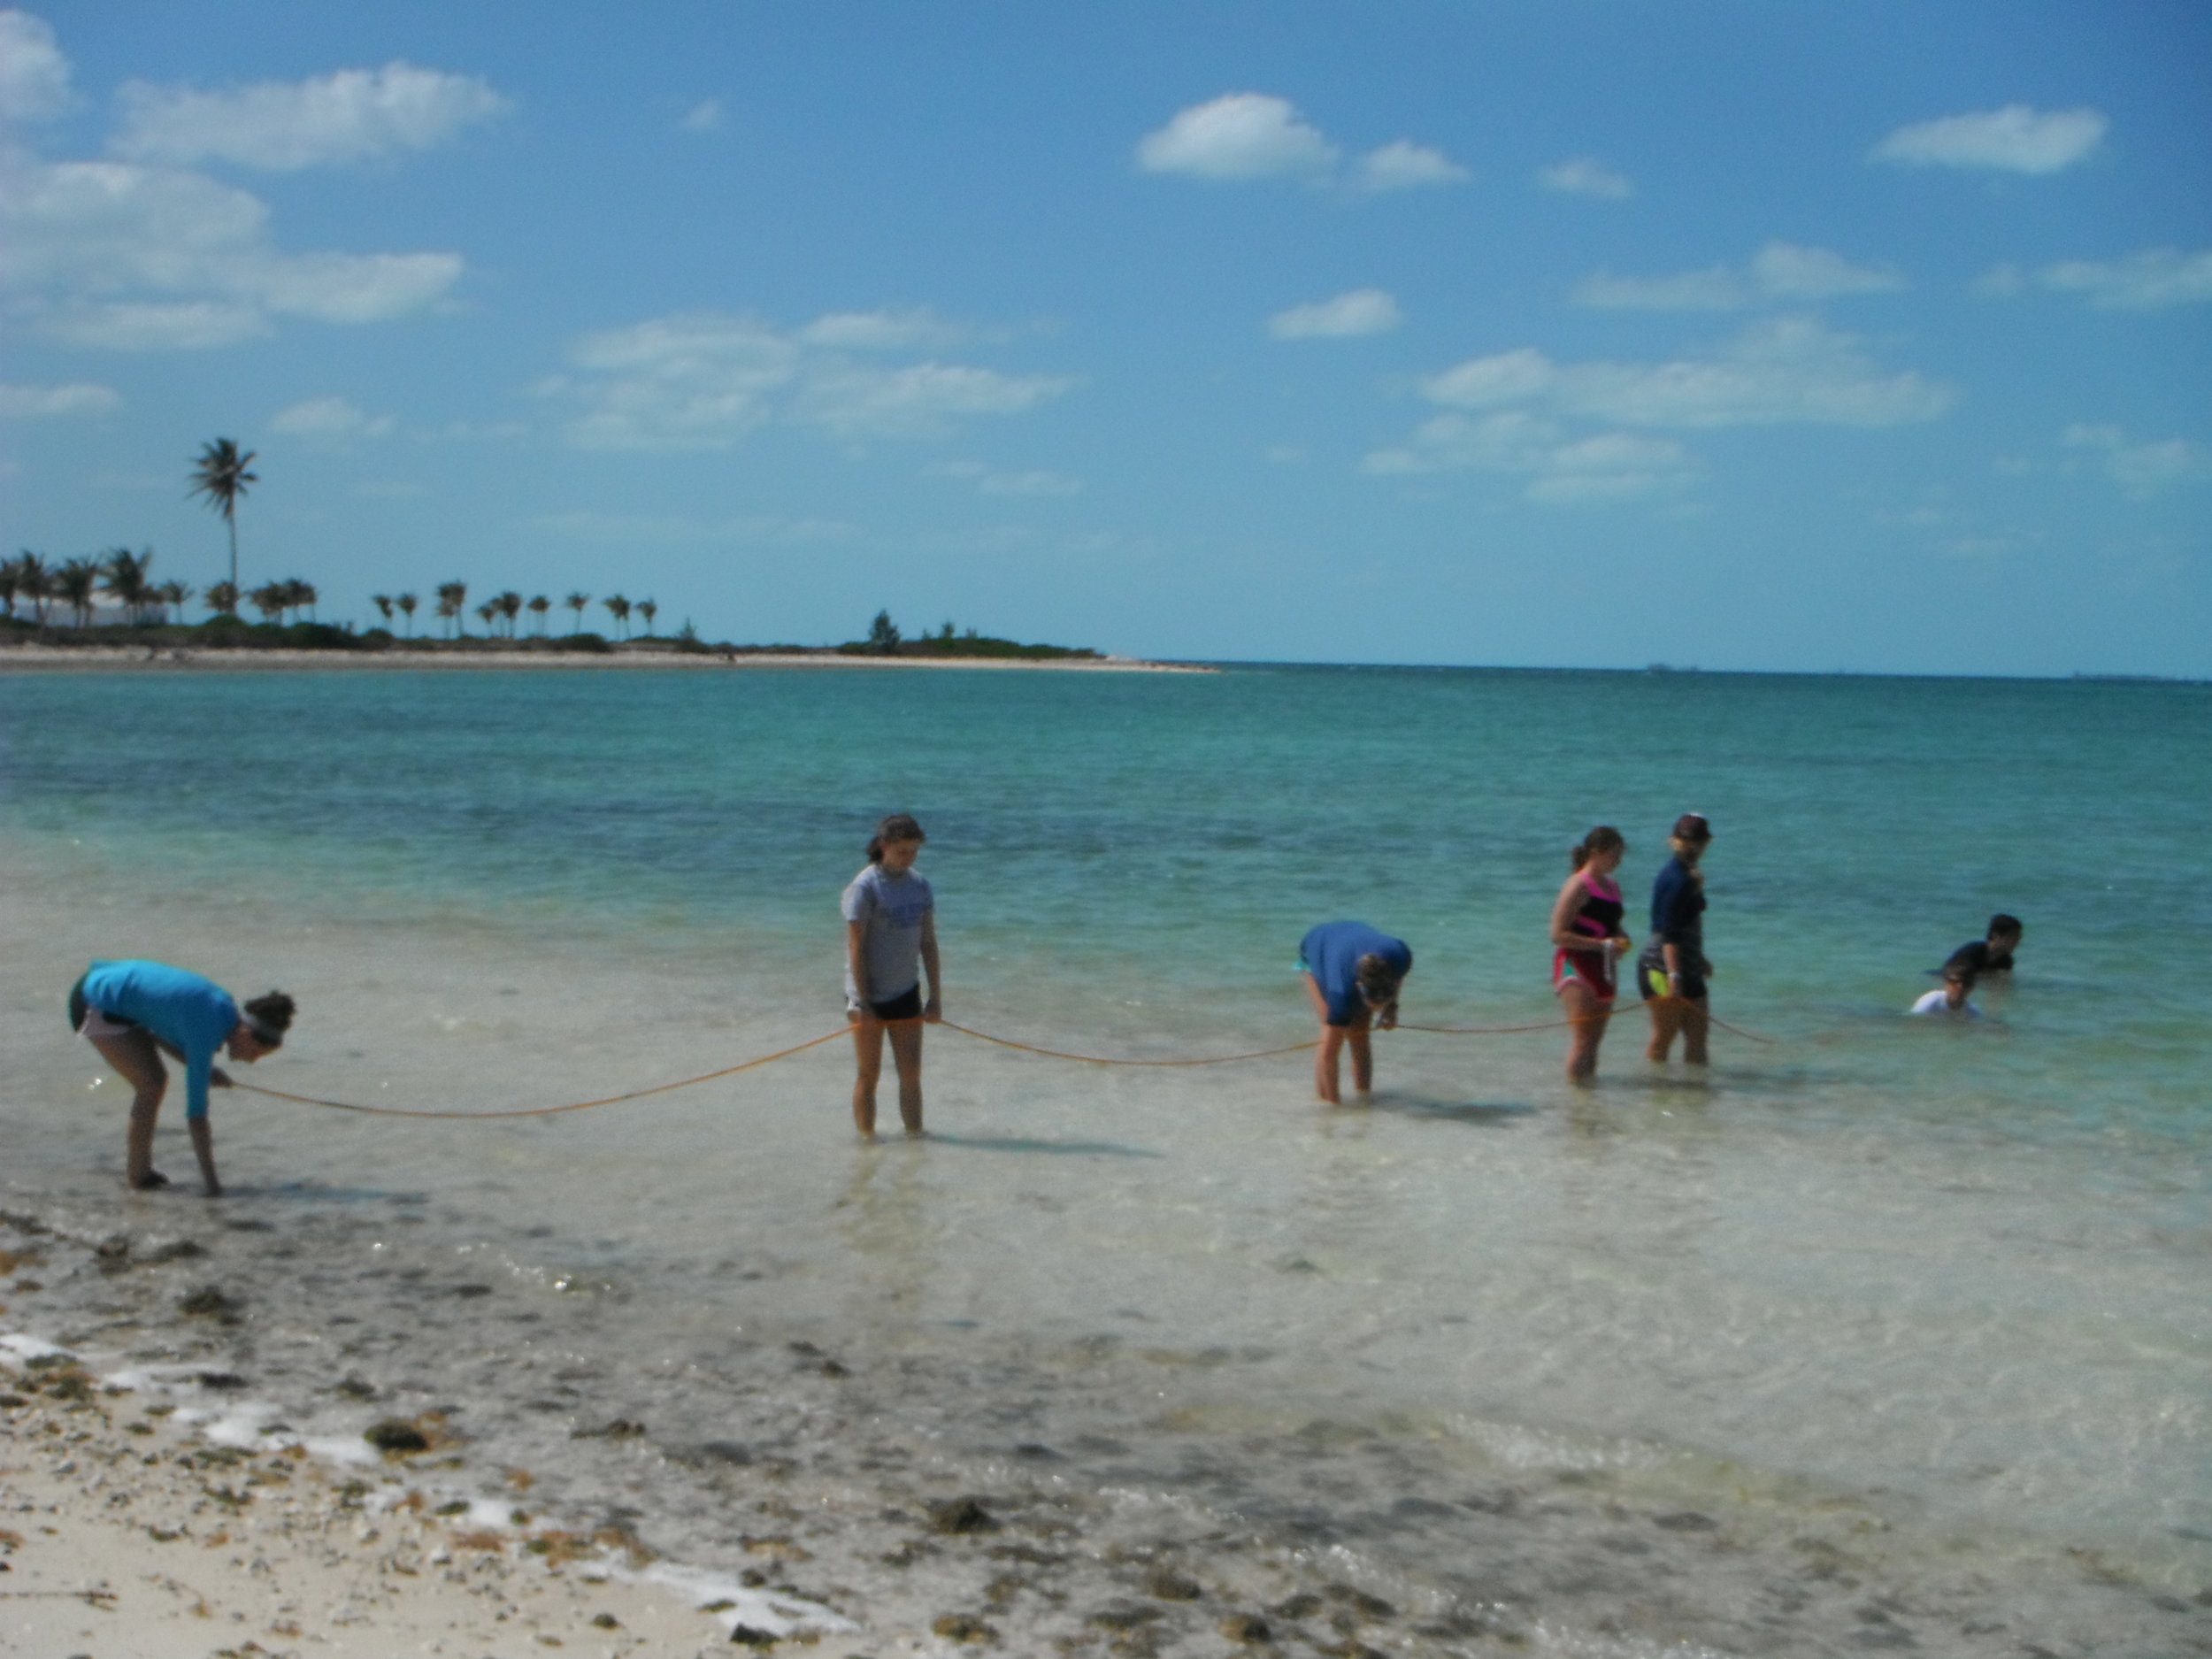 Island School students perform a walking transect, identifying and marking juvenile queen conch on Sunrise Beach.